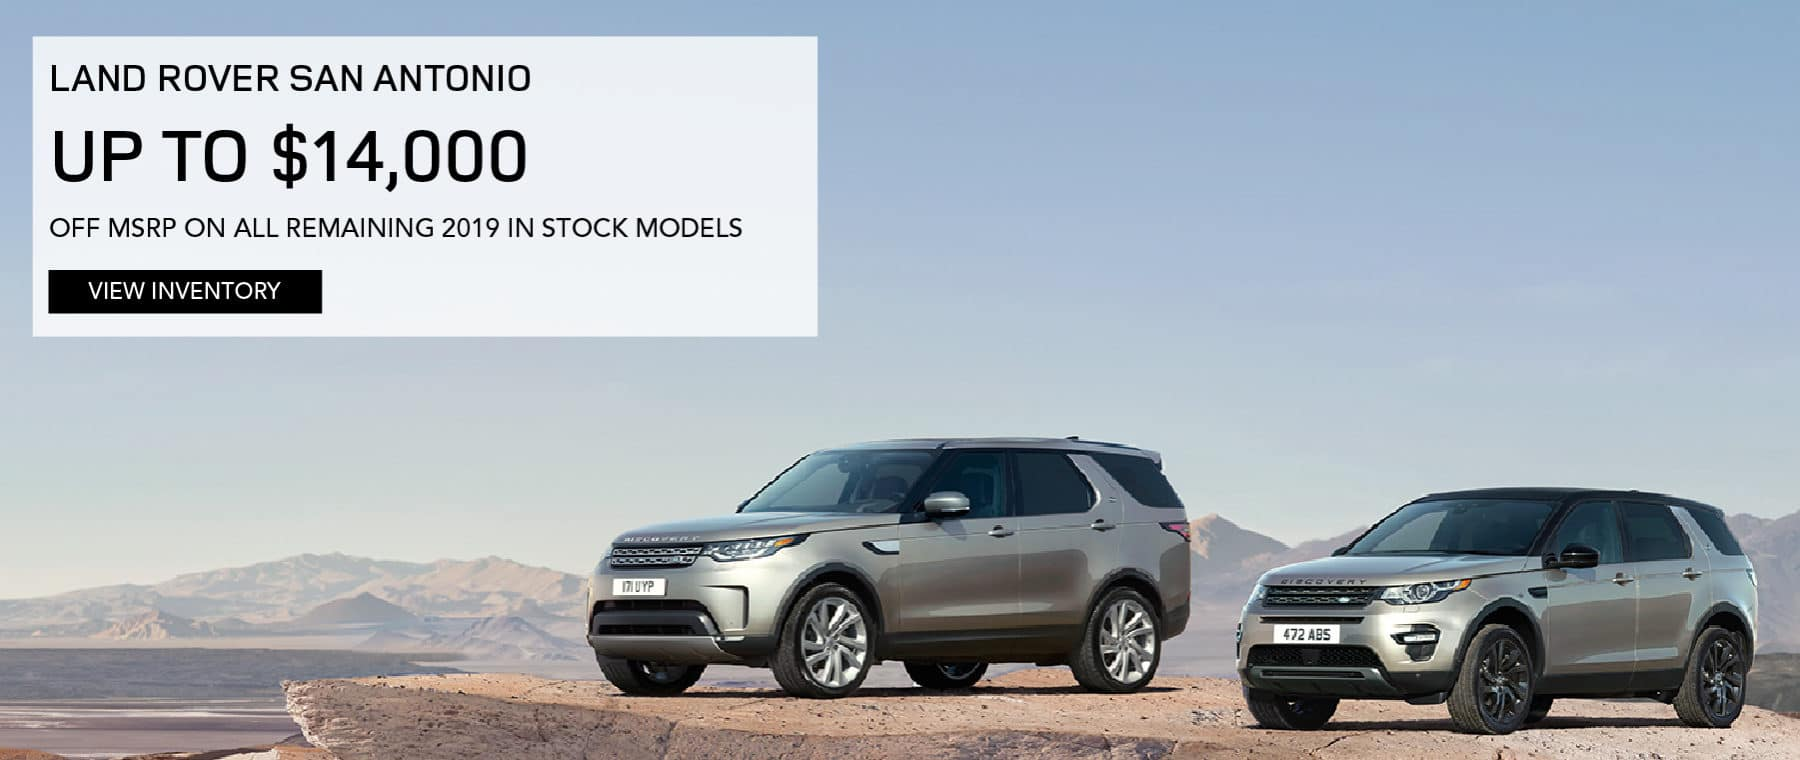 LAND ROVER SAN ANTONIO UP TO $14,000 OFF MSRP ON ALL REMAINING 2019 IN STOCK MODELS. VIEW INVENTORY. SILVER DISCOVERY AND DISCOVERY SPORT IN MOUNTAINS.